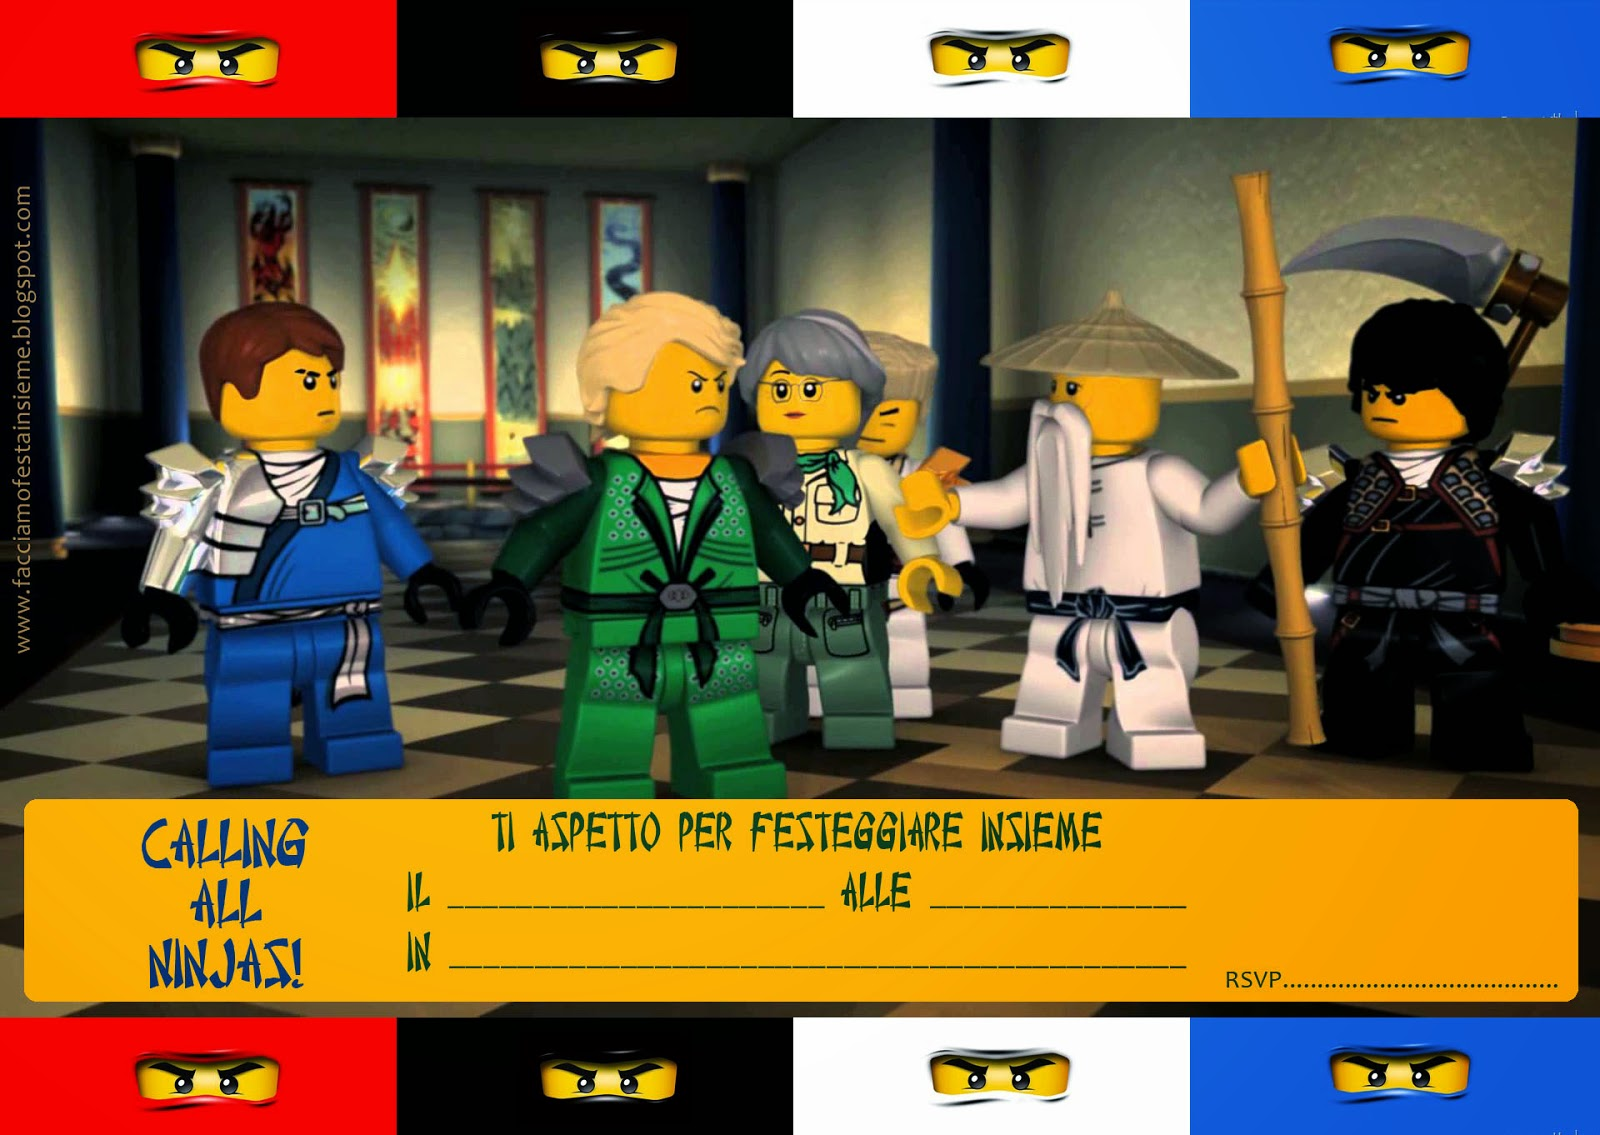 lego ninjago party inviti di pleanno